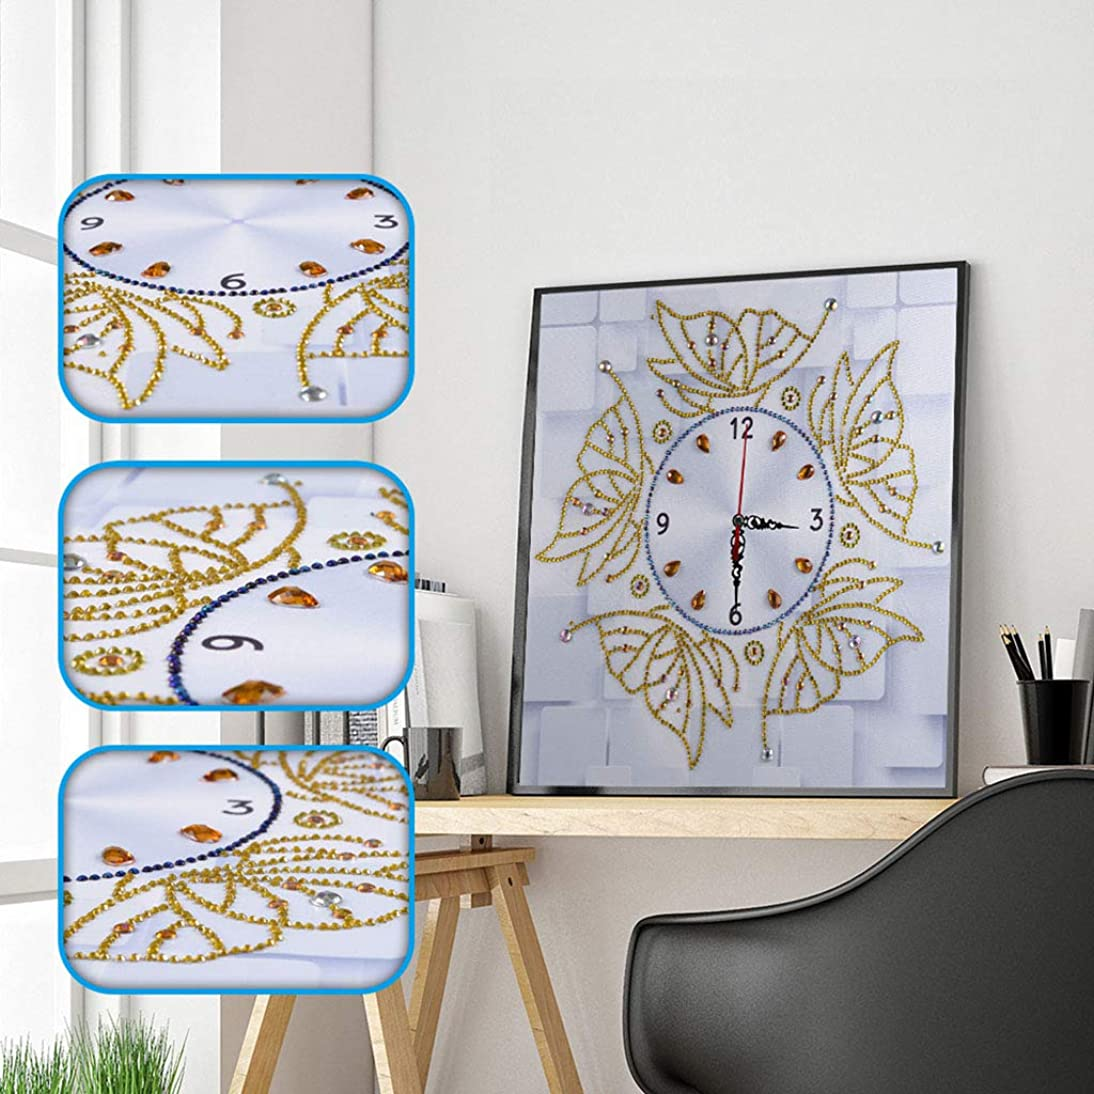 Amersin DIY 5D Special Shaped Diamond Painting by Number Kits, Full Drill Rhinestone Embroidery Cross Stitch Pictures for Christmas Home Decor (Clock 7)